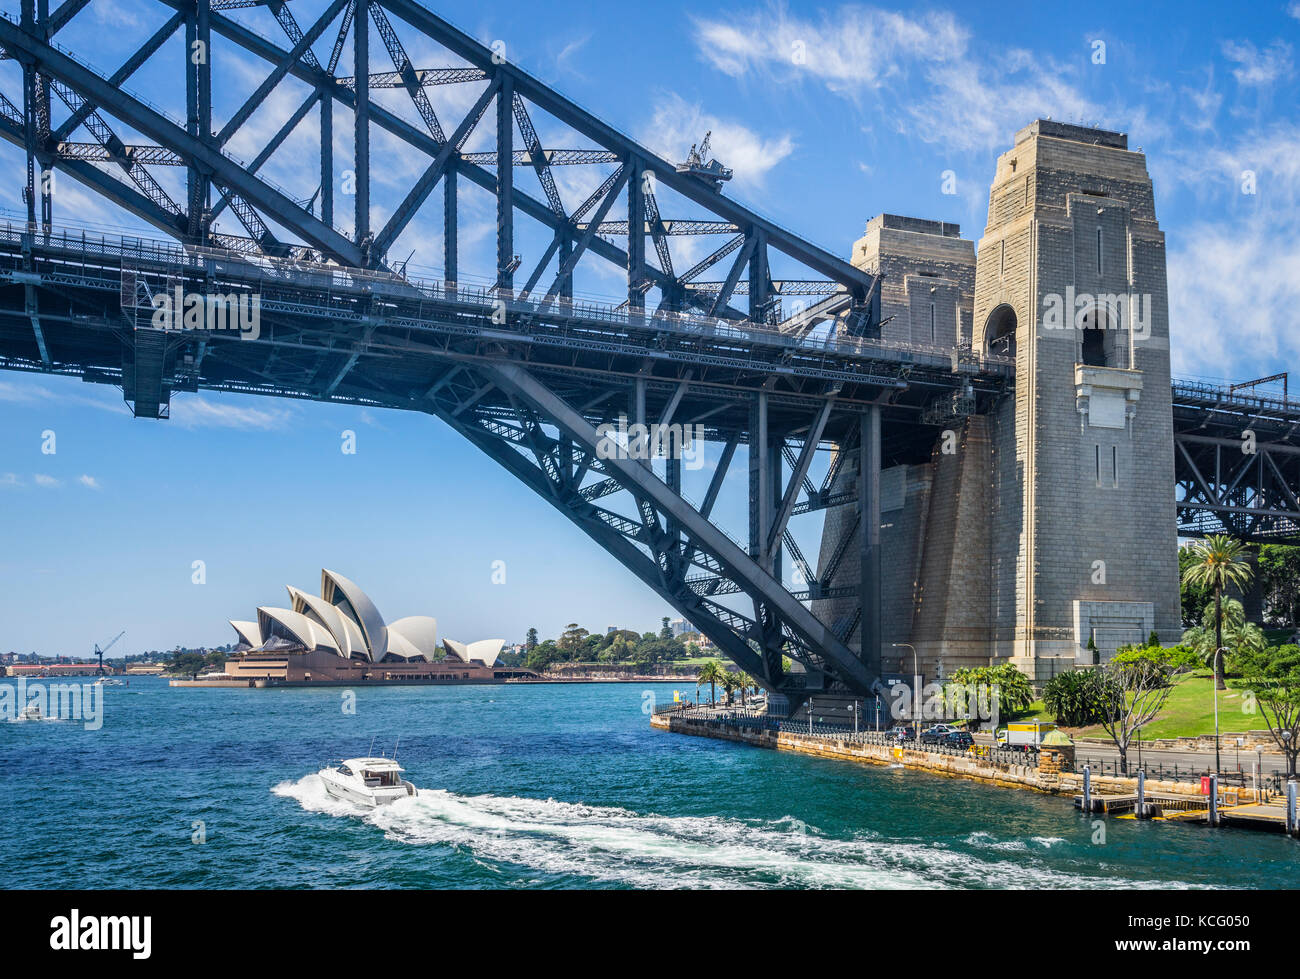 Australia, New South Wales, Sydney Harbour, Dawes Point, view of the southern Pylons of the Sydney Harbour Bridge - Stock Image